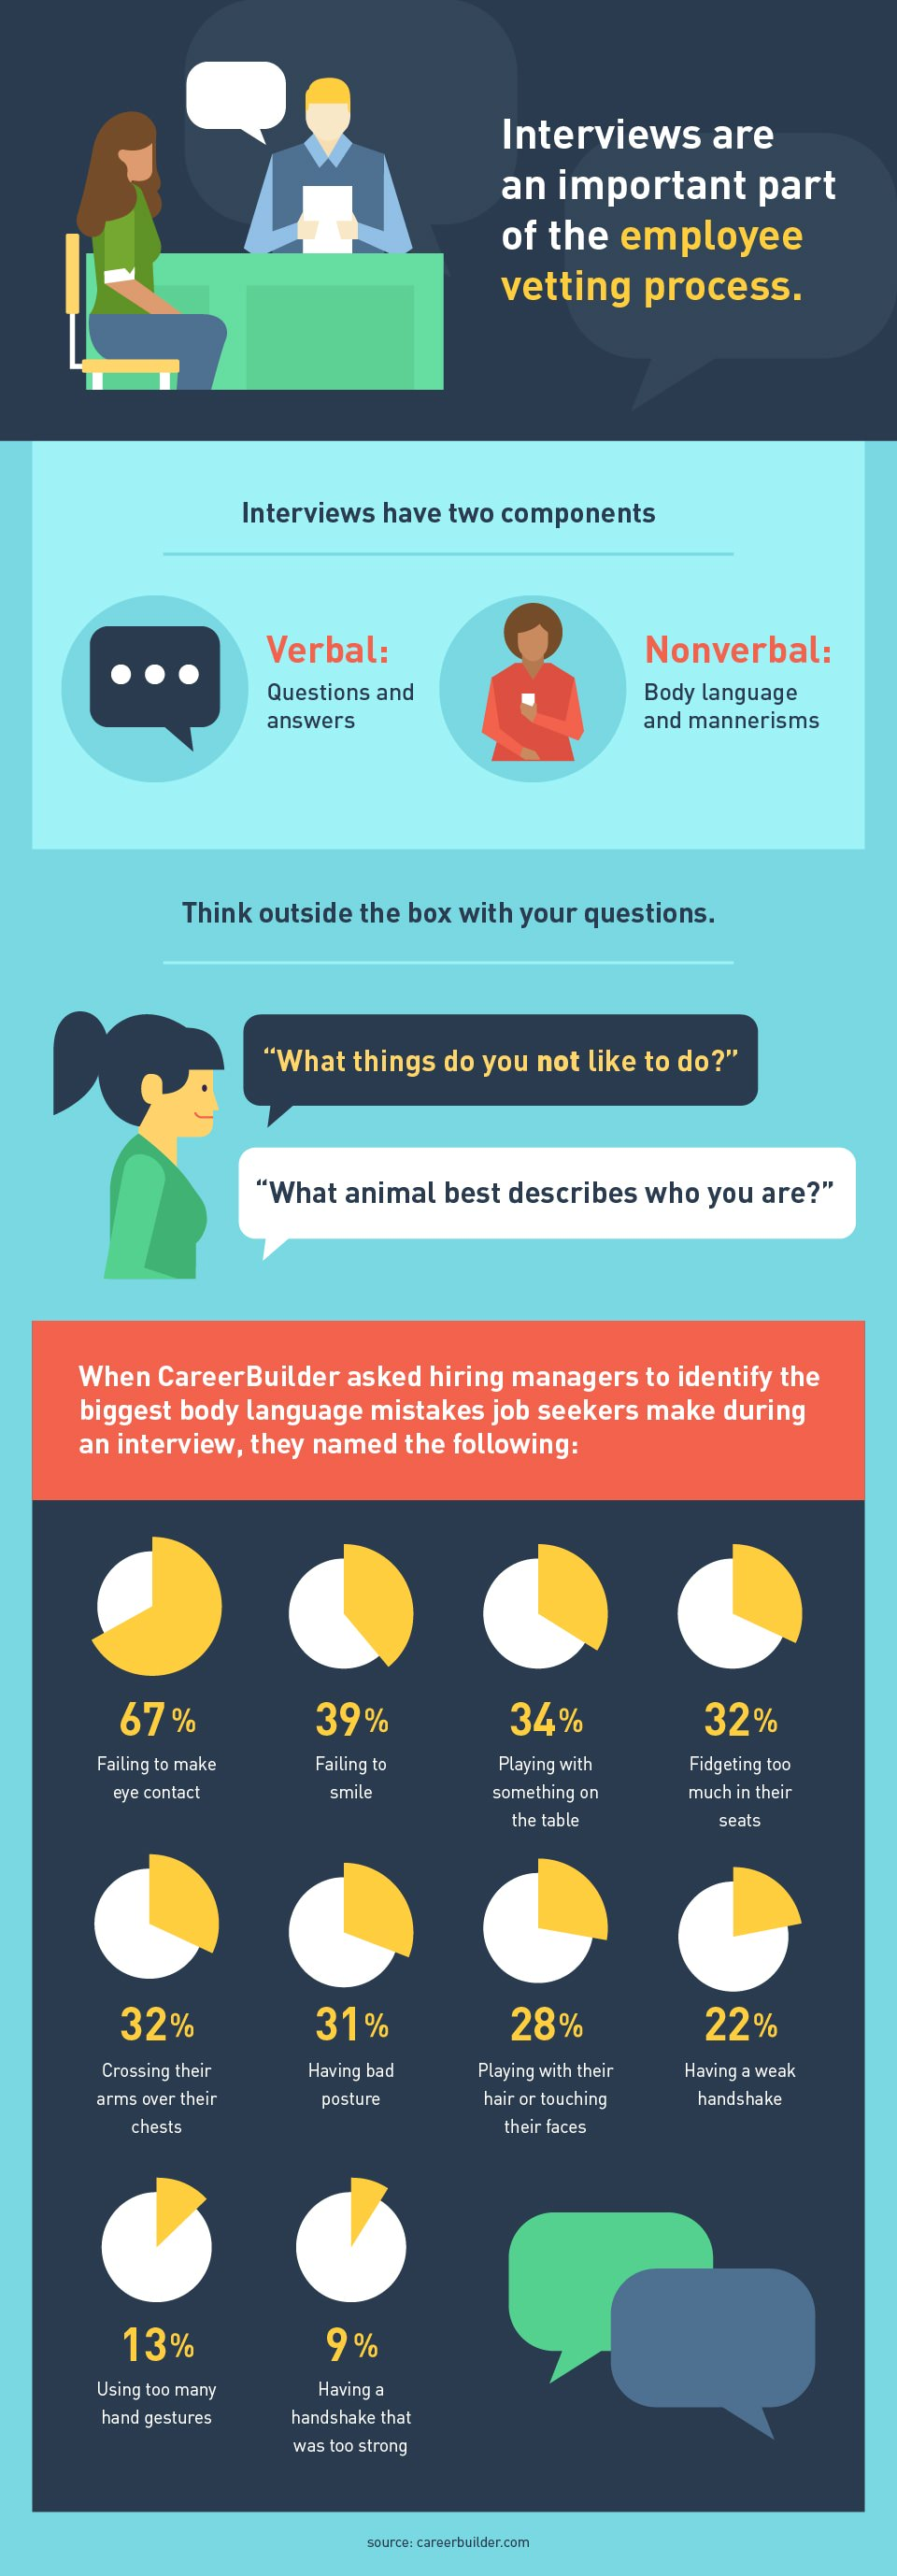 Beyond the Resume: Role of the Interview in the Employee Vetting Process - Infographic